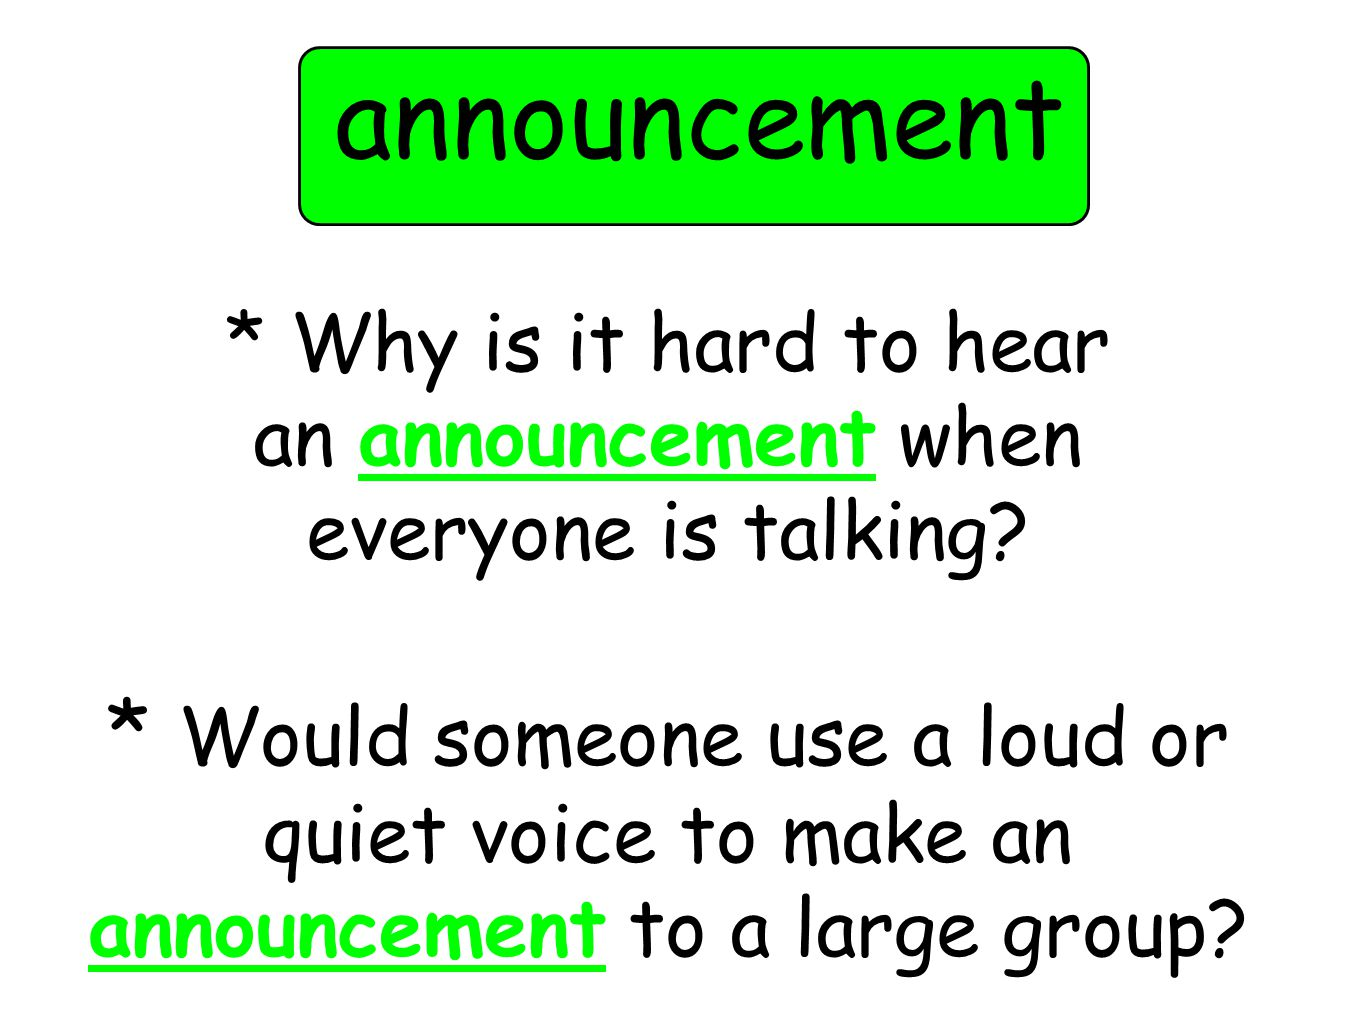 * Why is it hard to hear an announcement when everyone is talking? * Would someone use a loud or quiet voice to make an announcement to a large group?